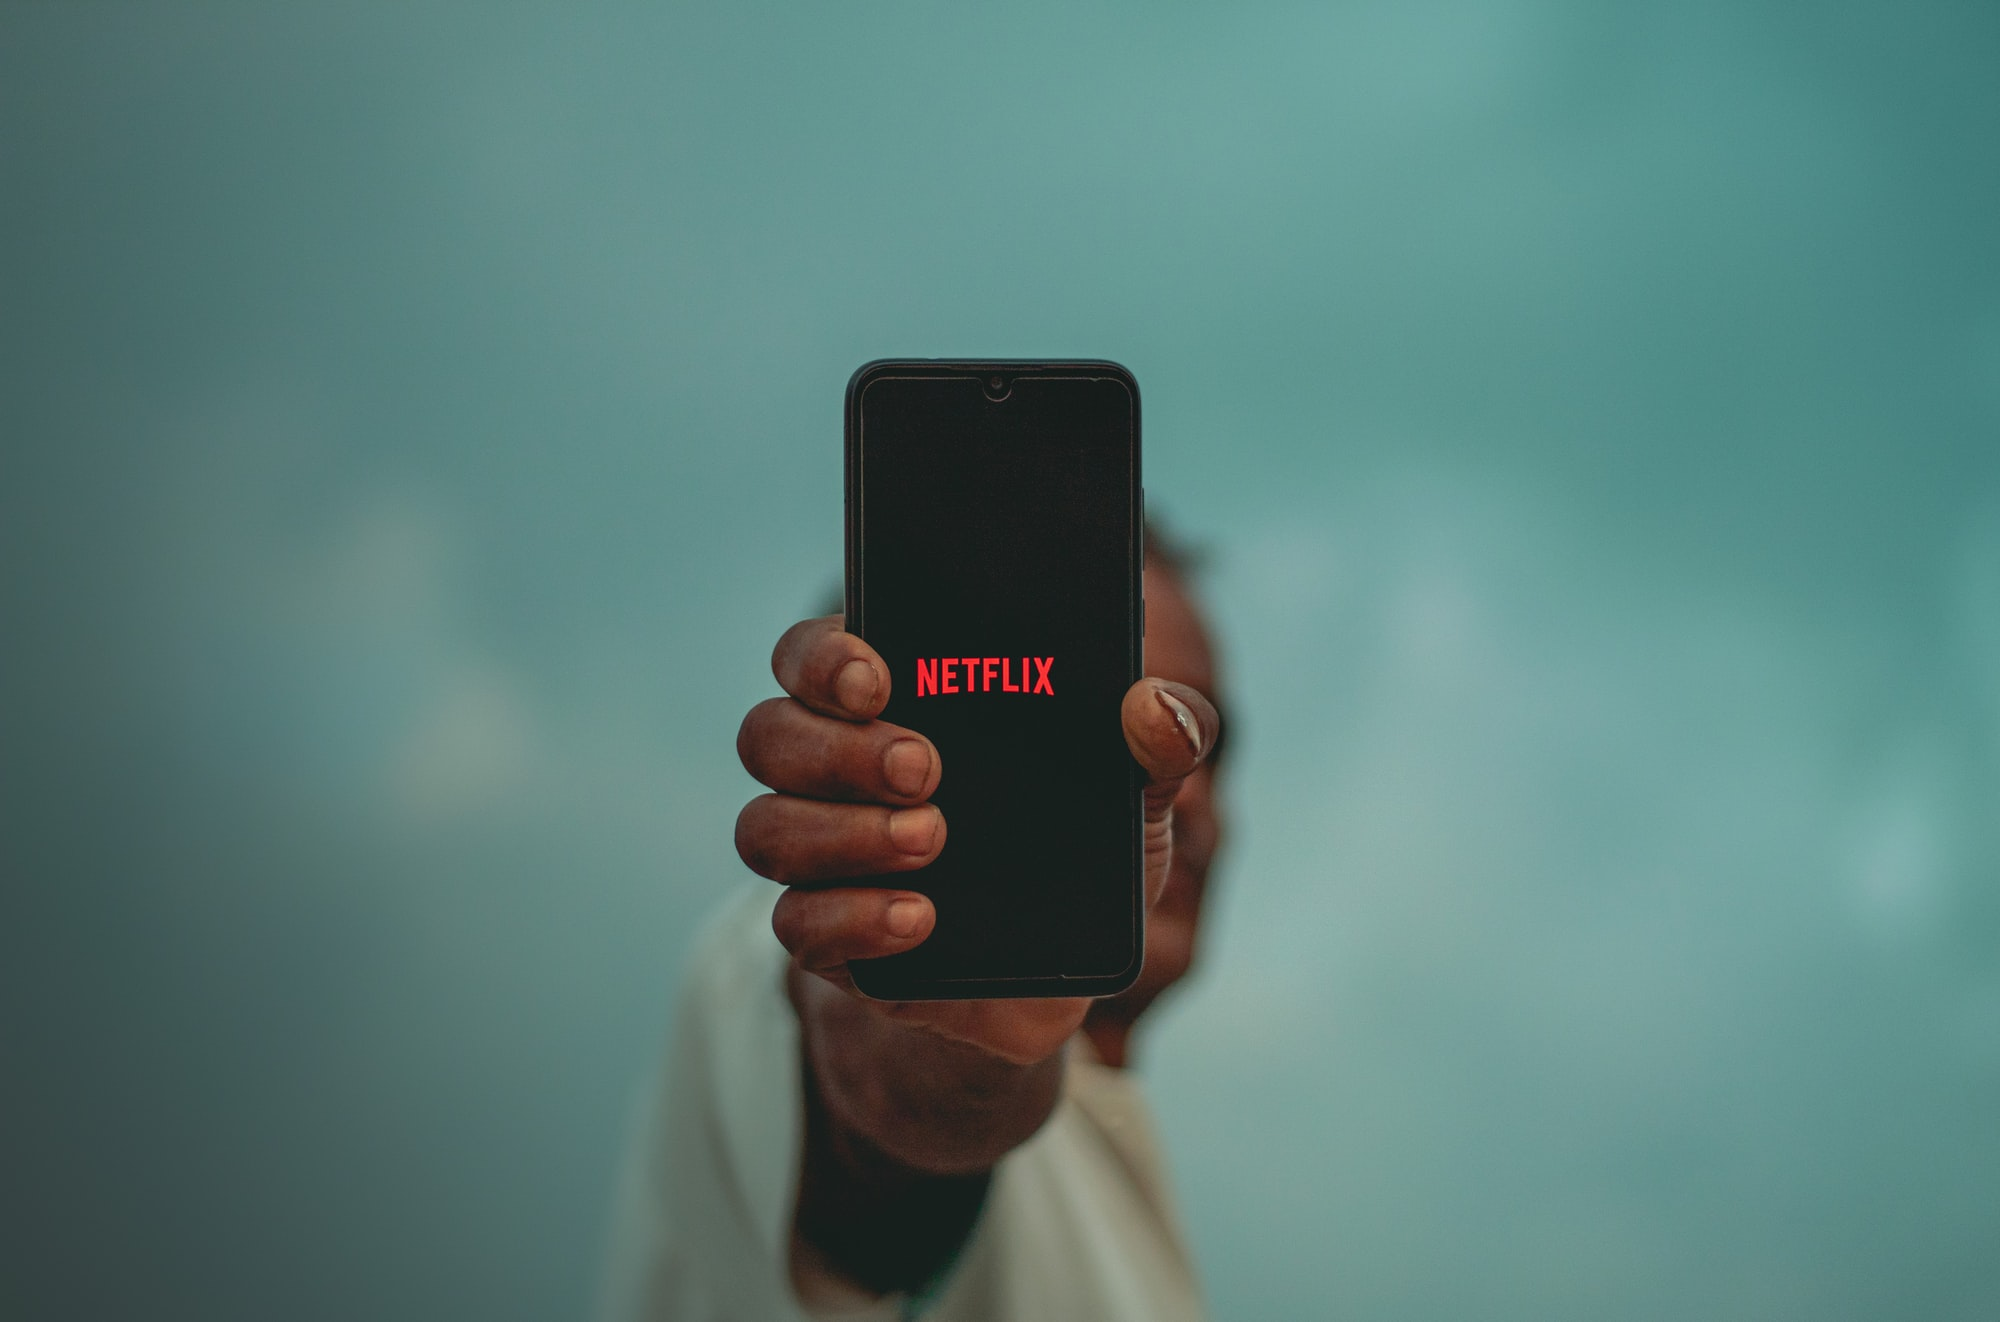 Best Netflix VPNs To Use Out There, According to Reddit